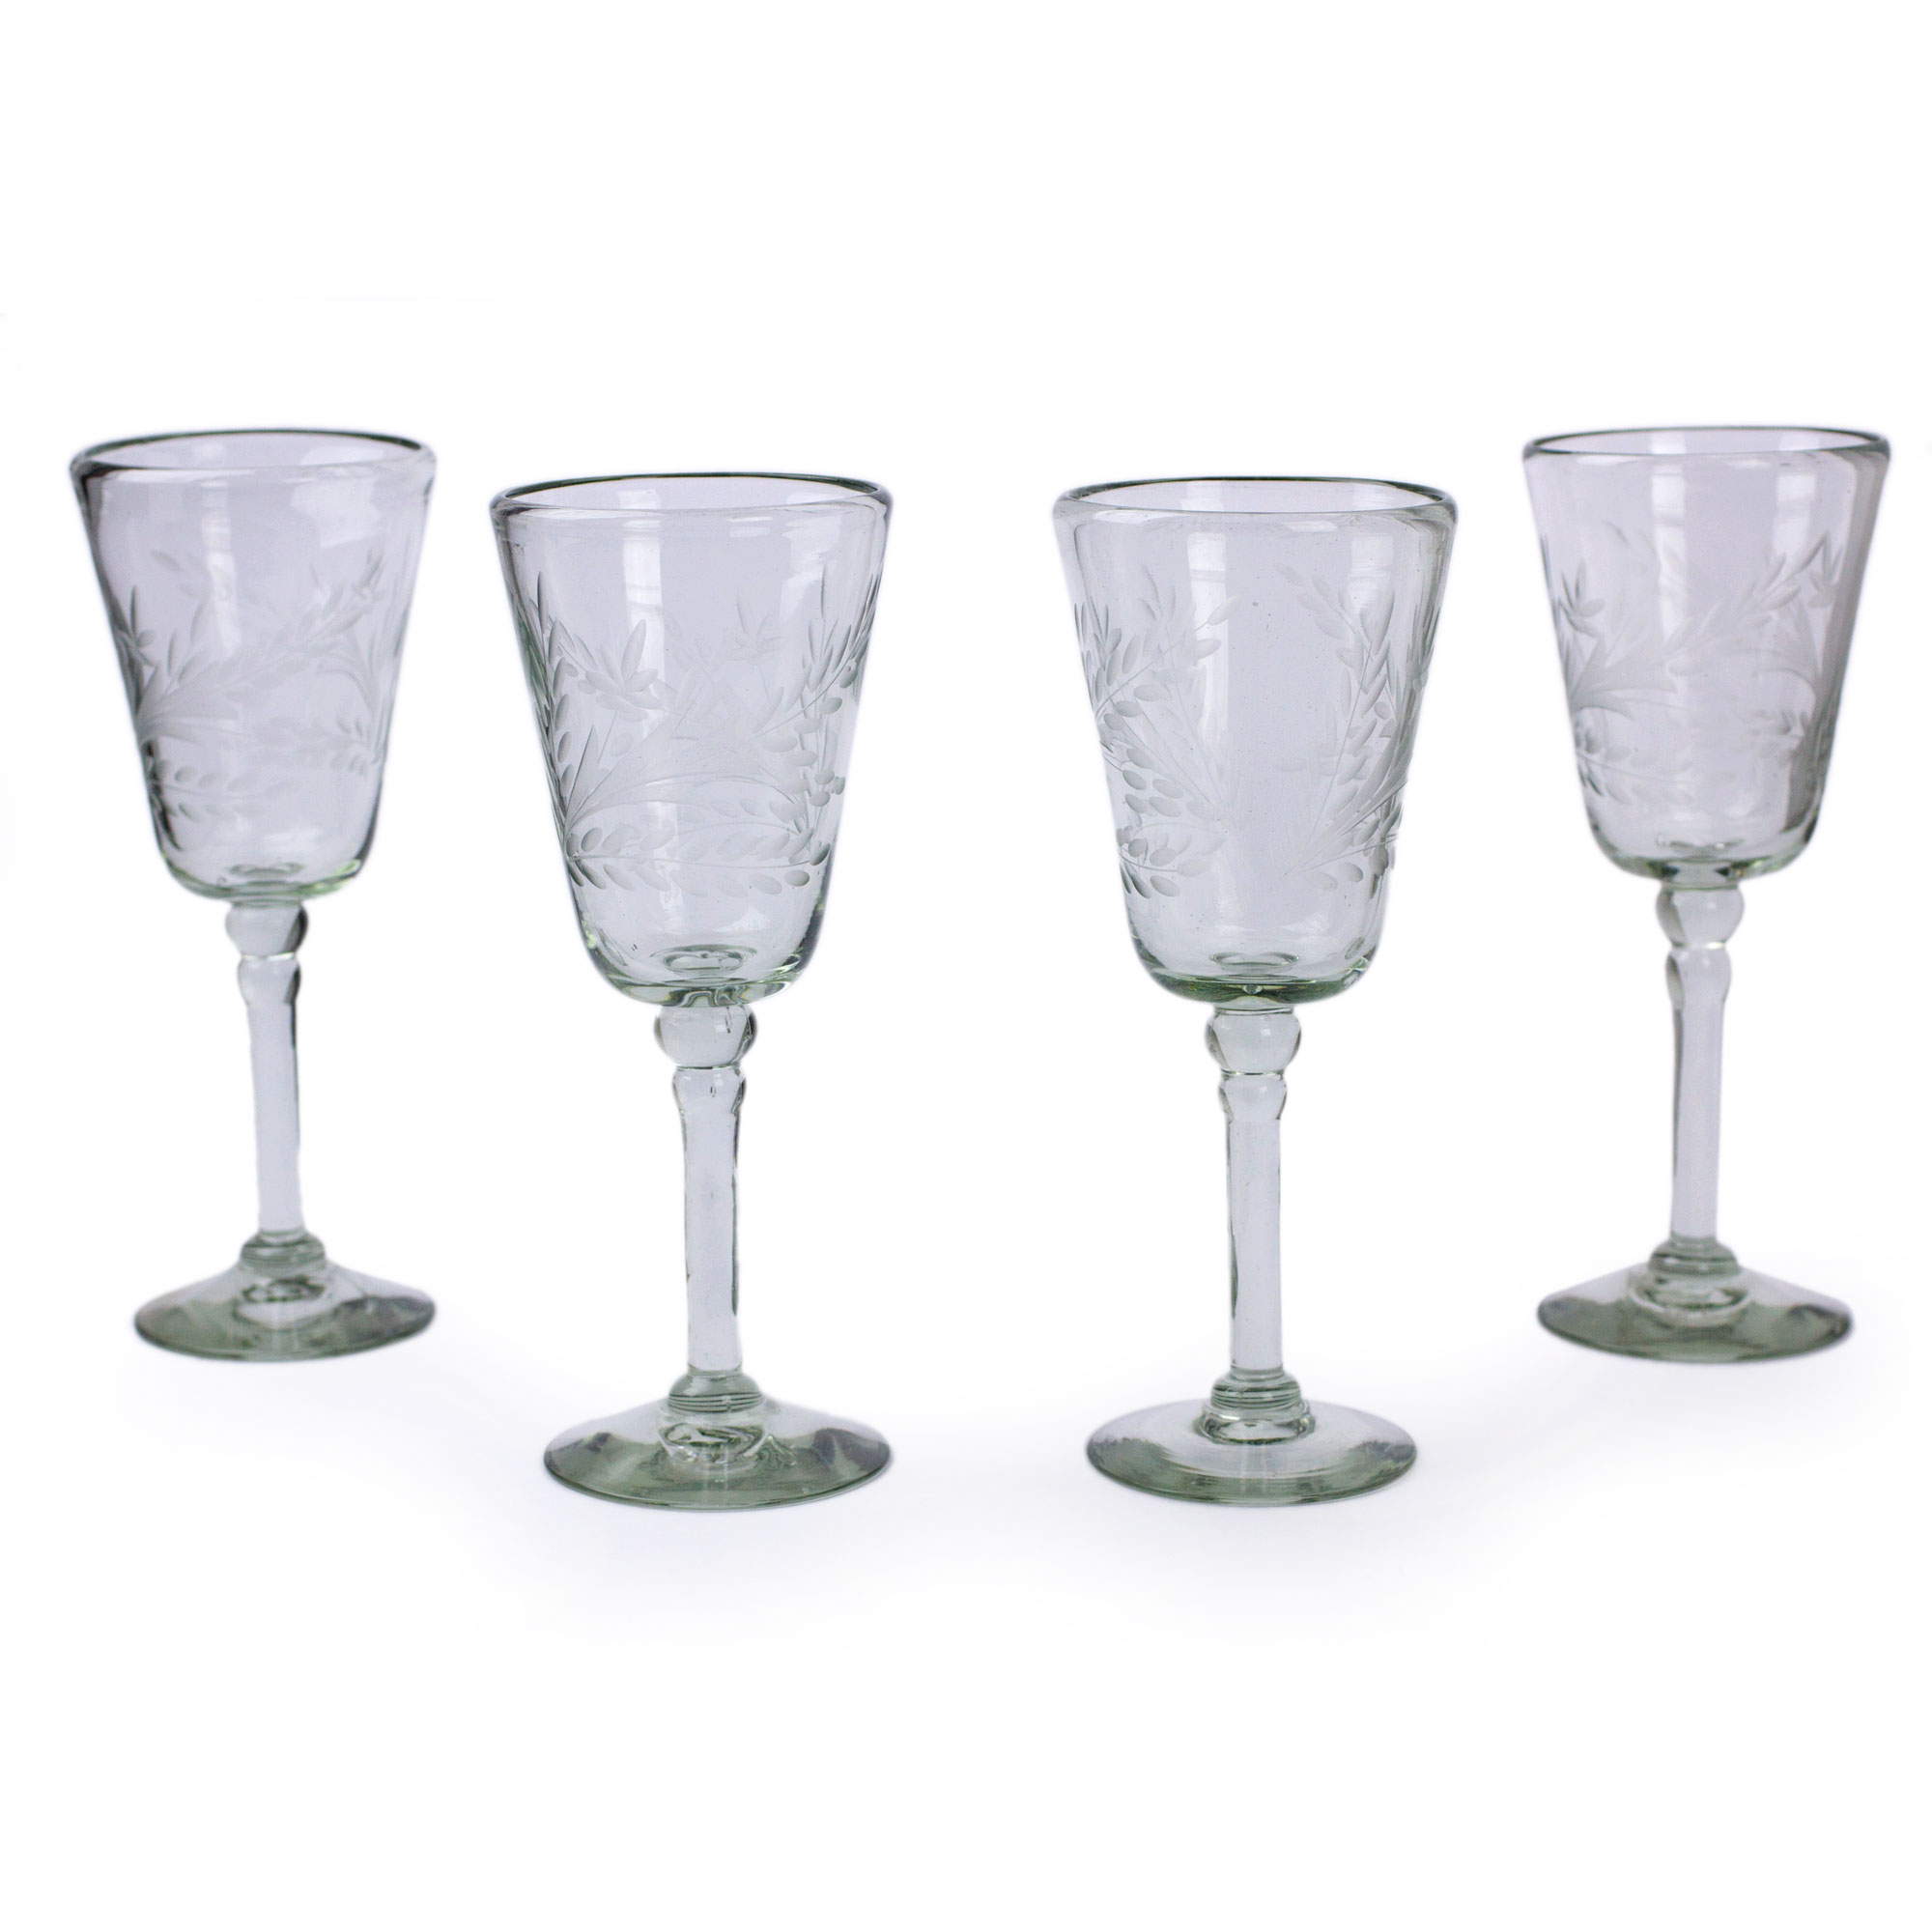 Handcrafted Handblown Glass Etched Wine Glass, 'Crystal Flowers' (Set of 4)